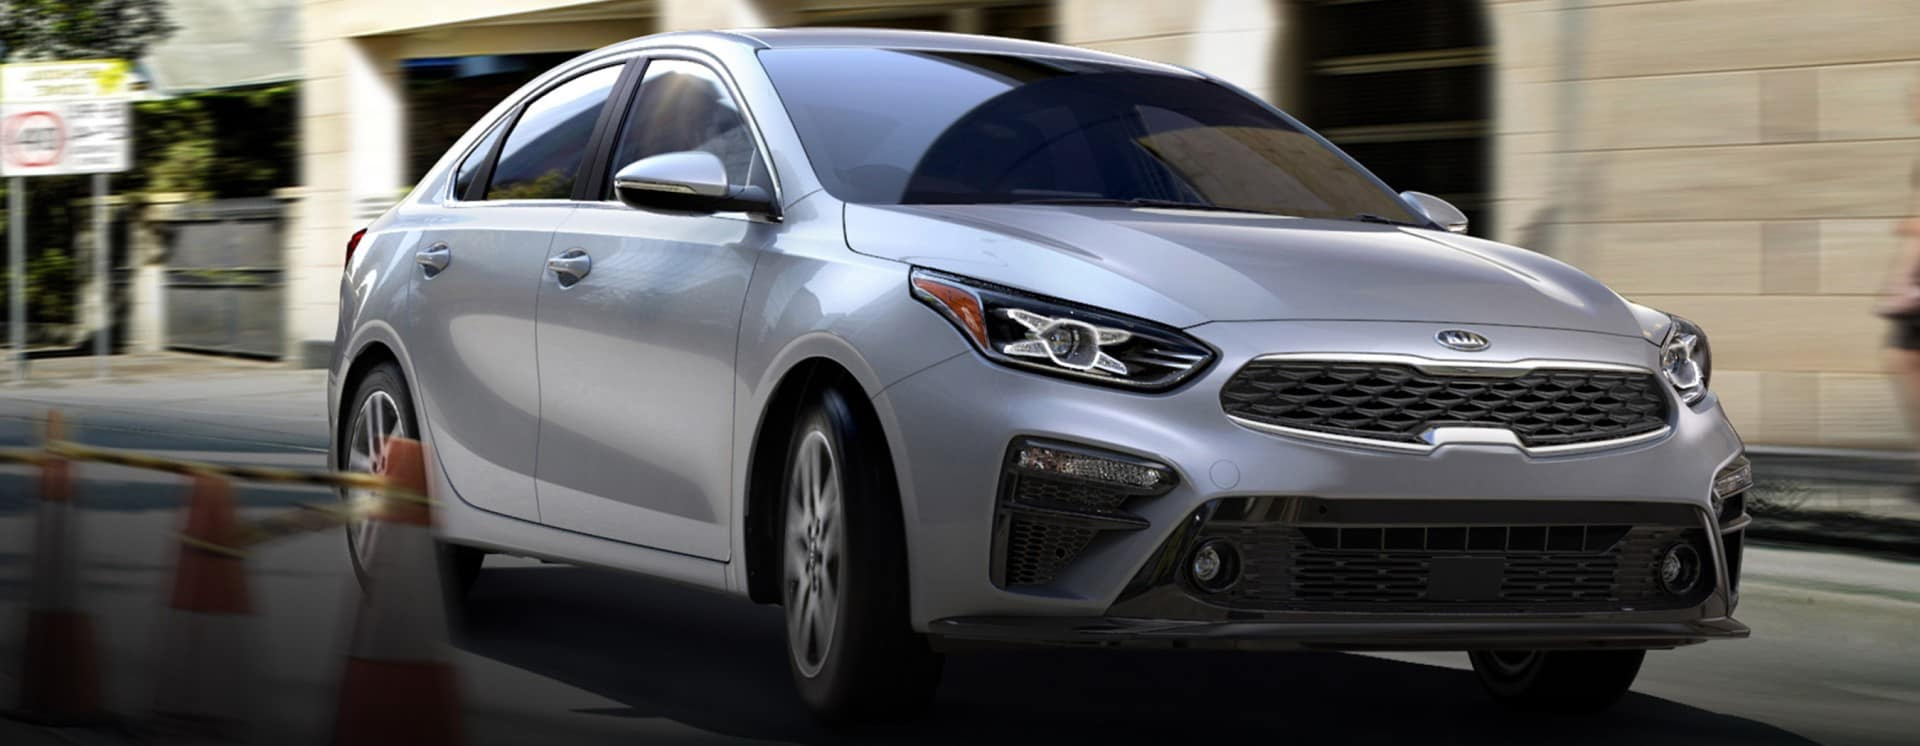 Kia_Forte_Silver_Driving_In_CIty